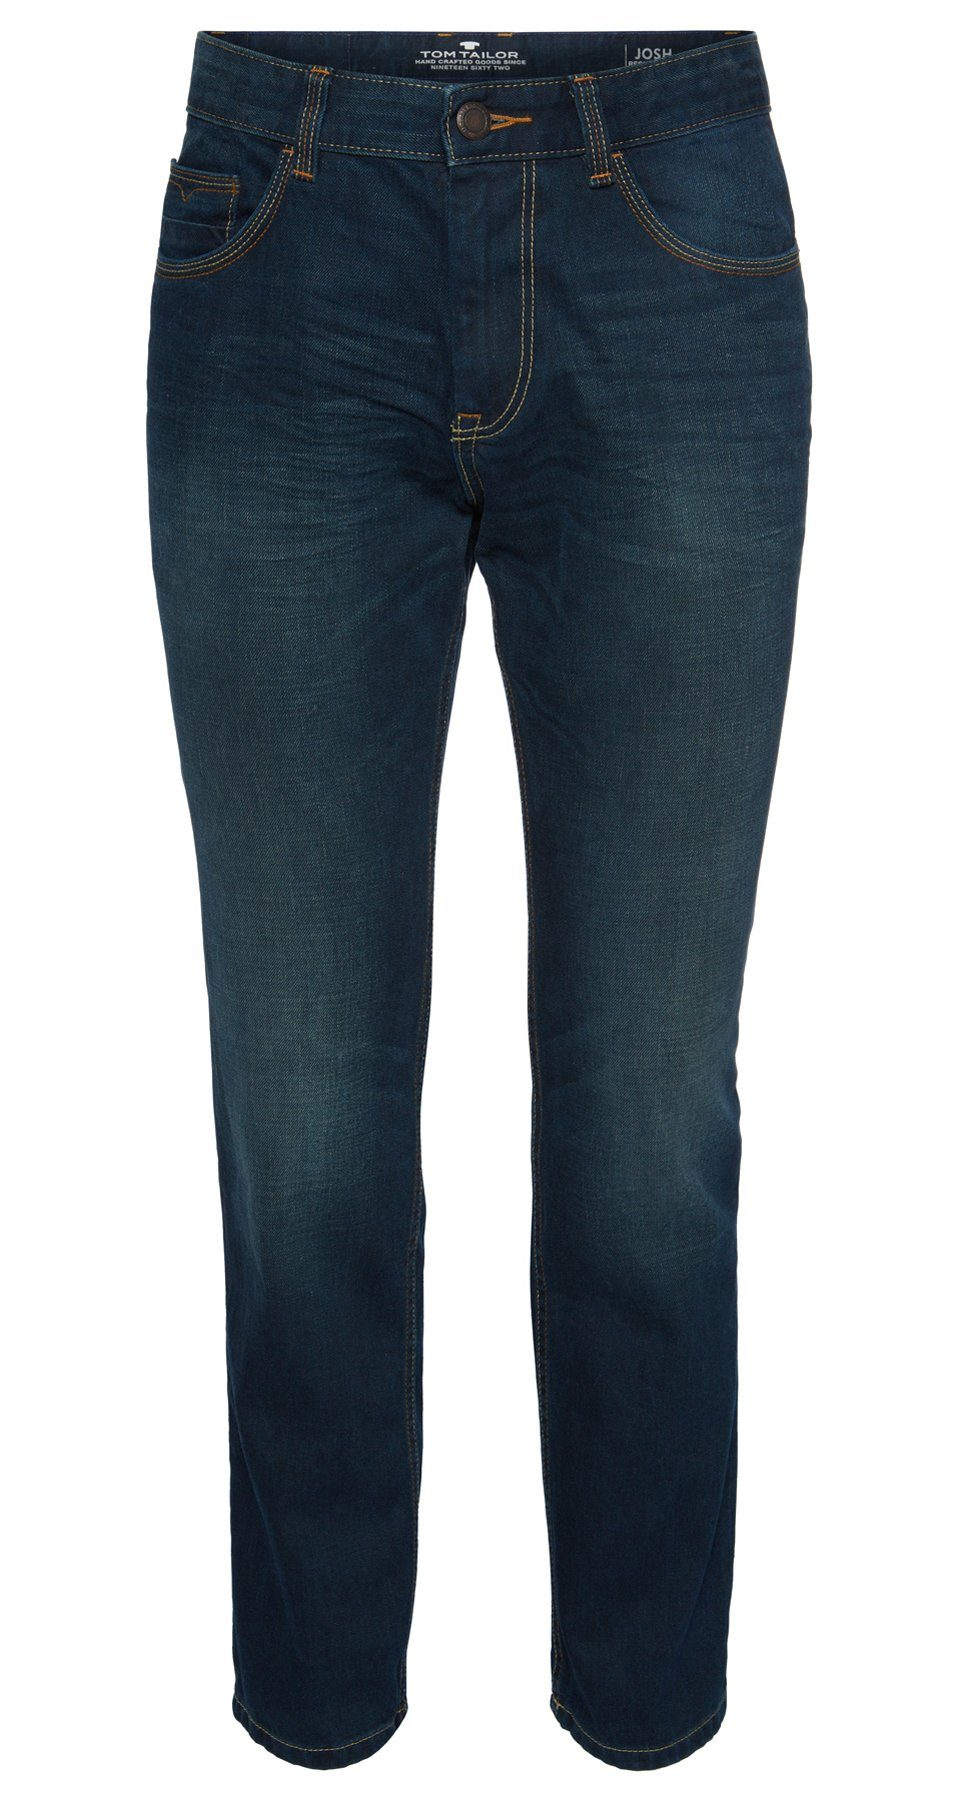 TOM TAILOR Jeans »Used-Jeans mit Crinkles«